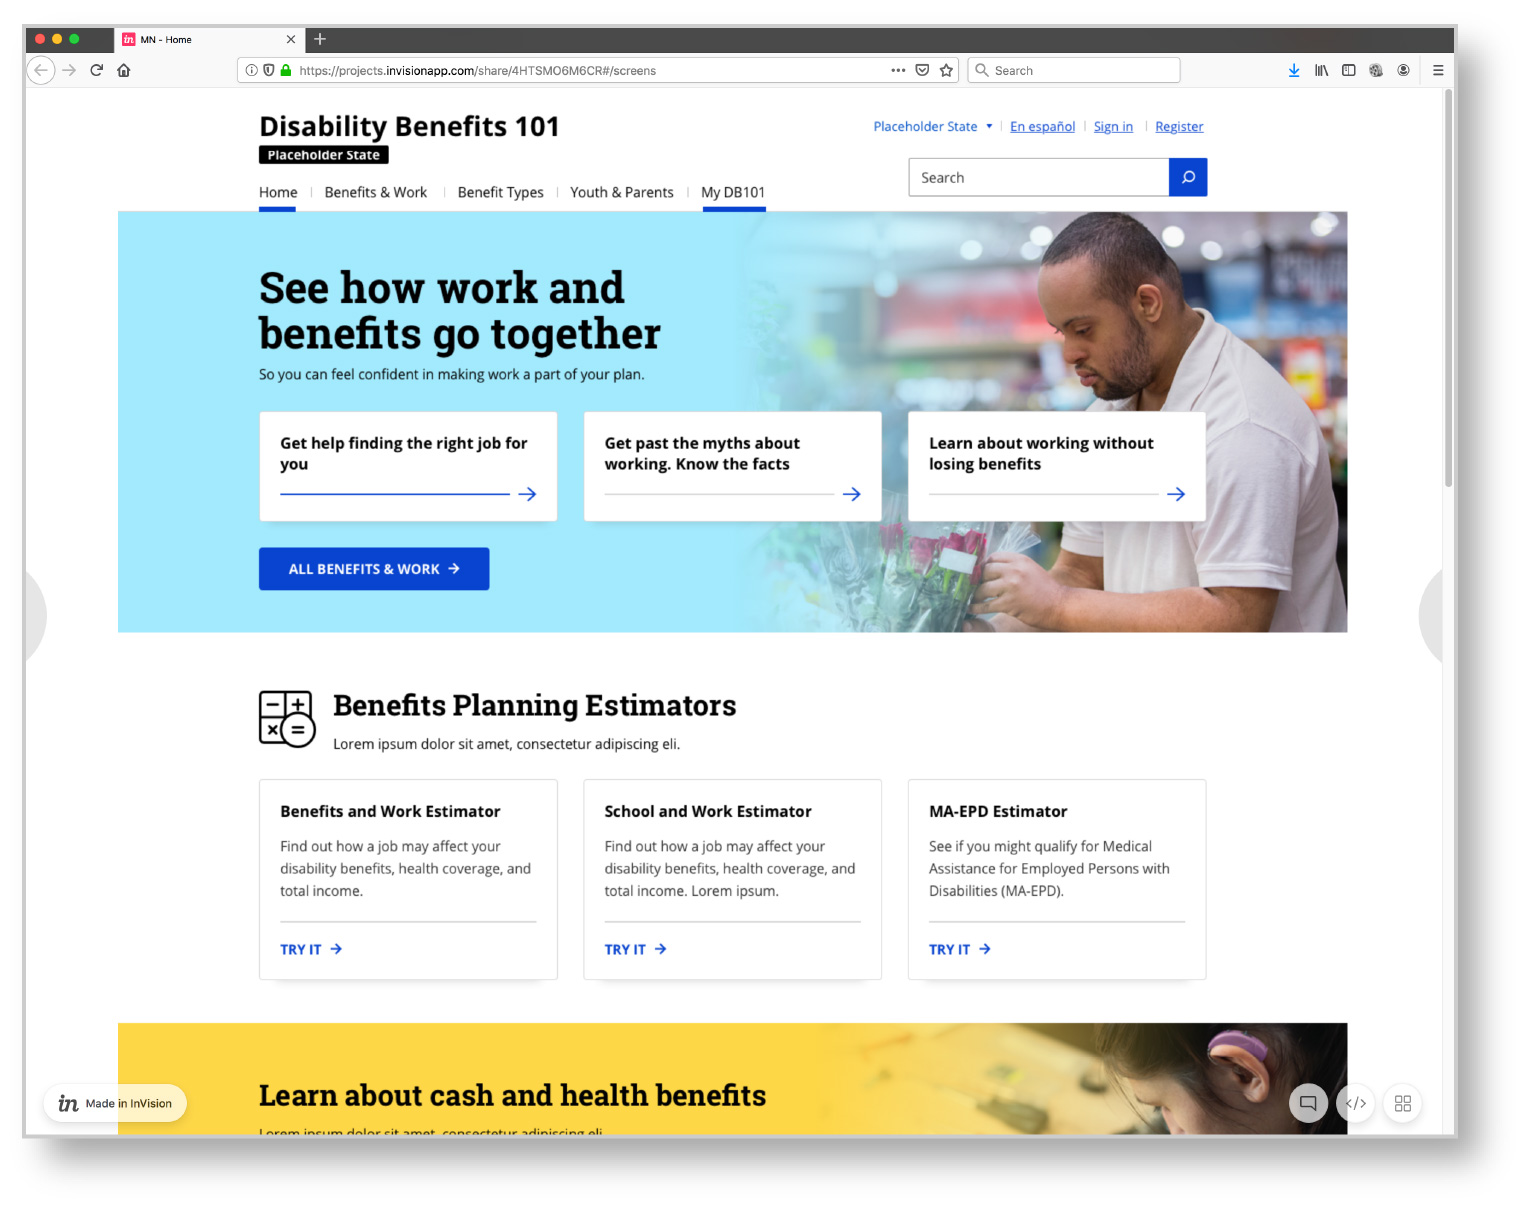 A screenshot of the home page of the Disability Benefits 101 web page.